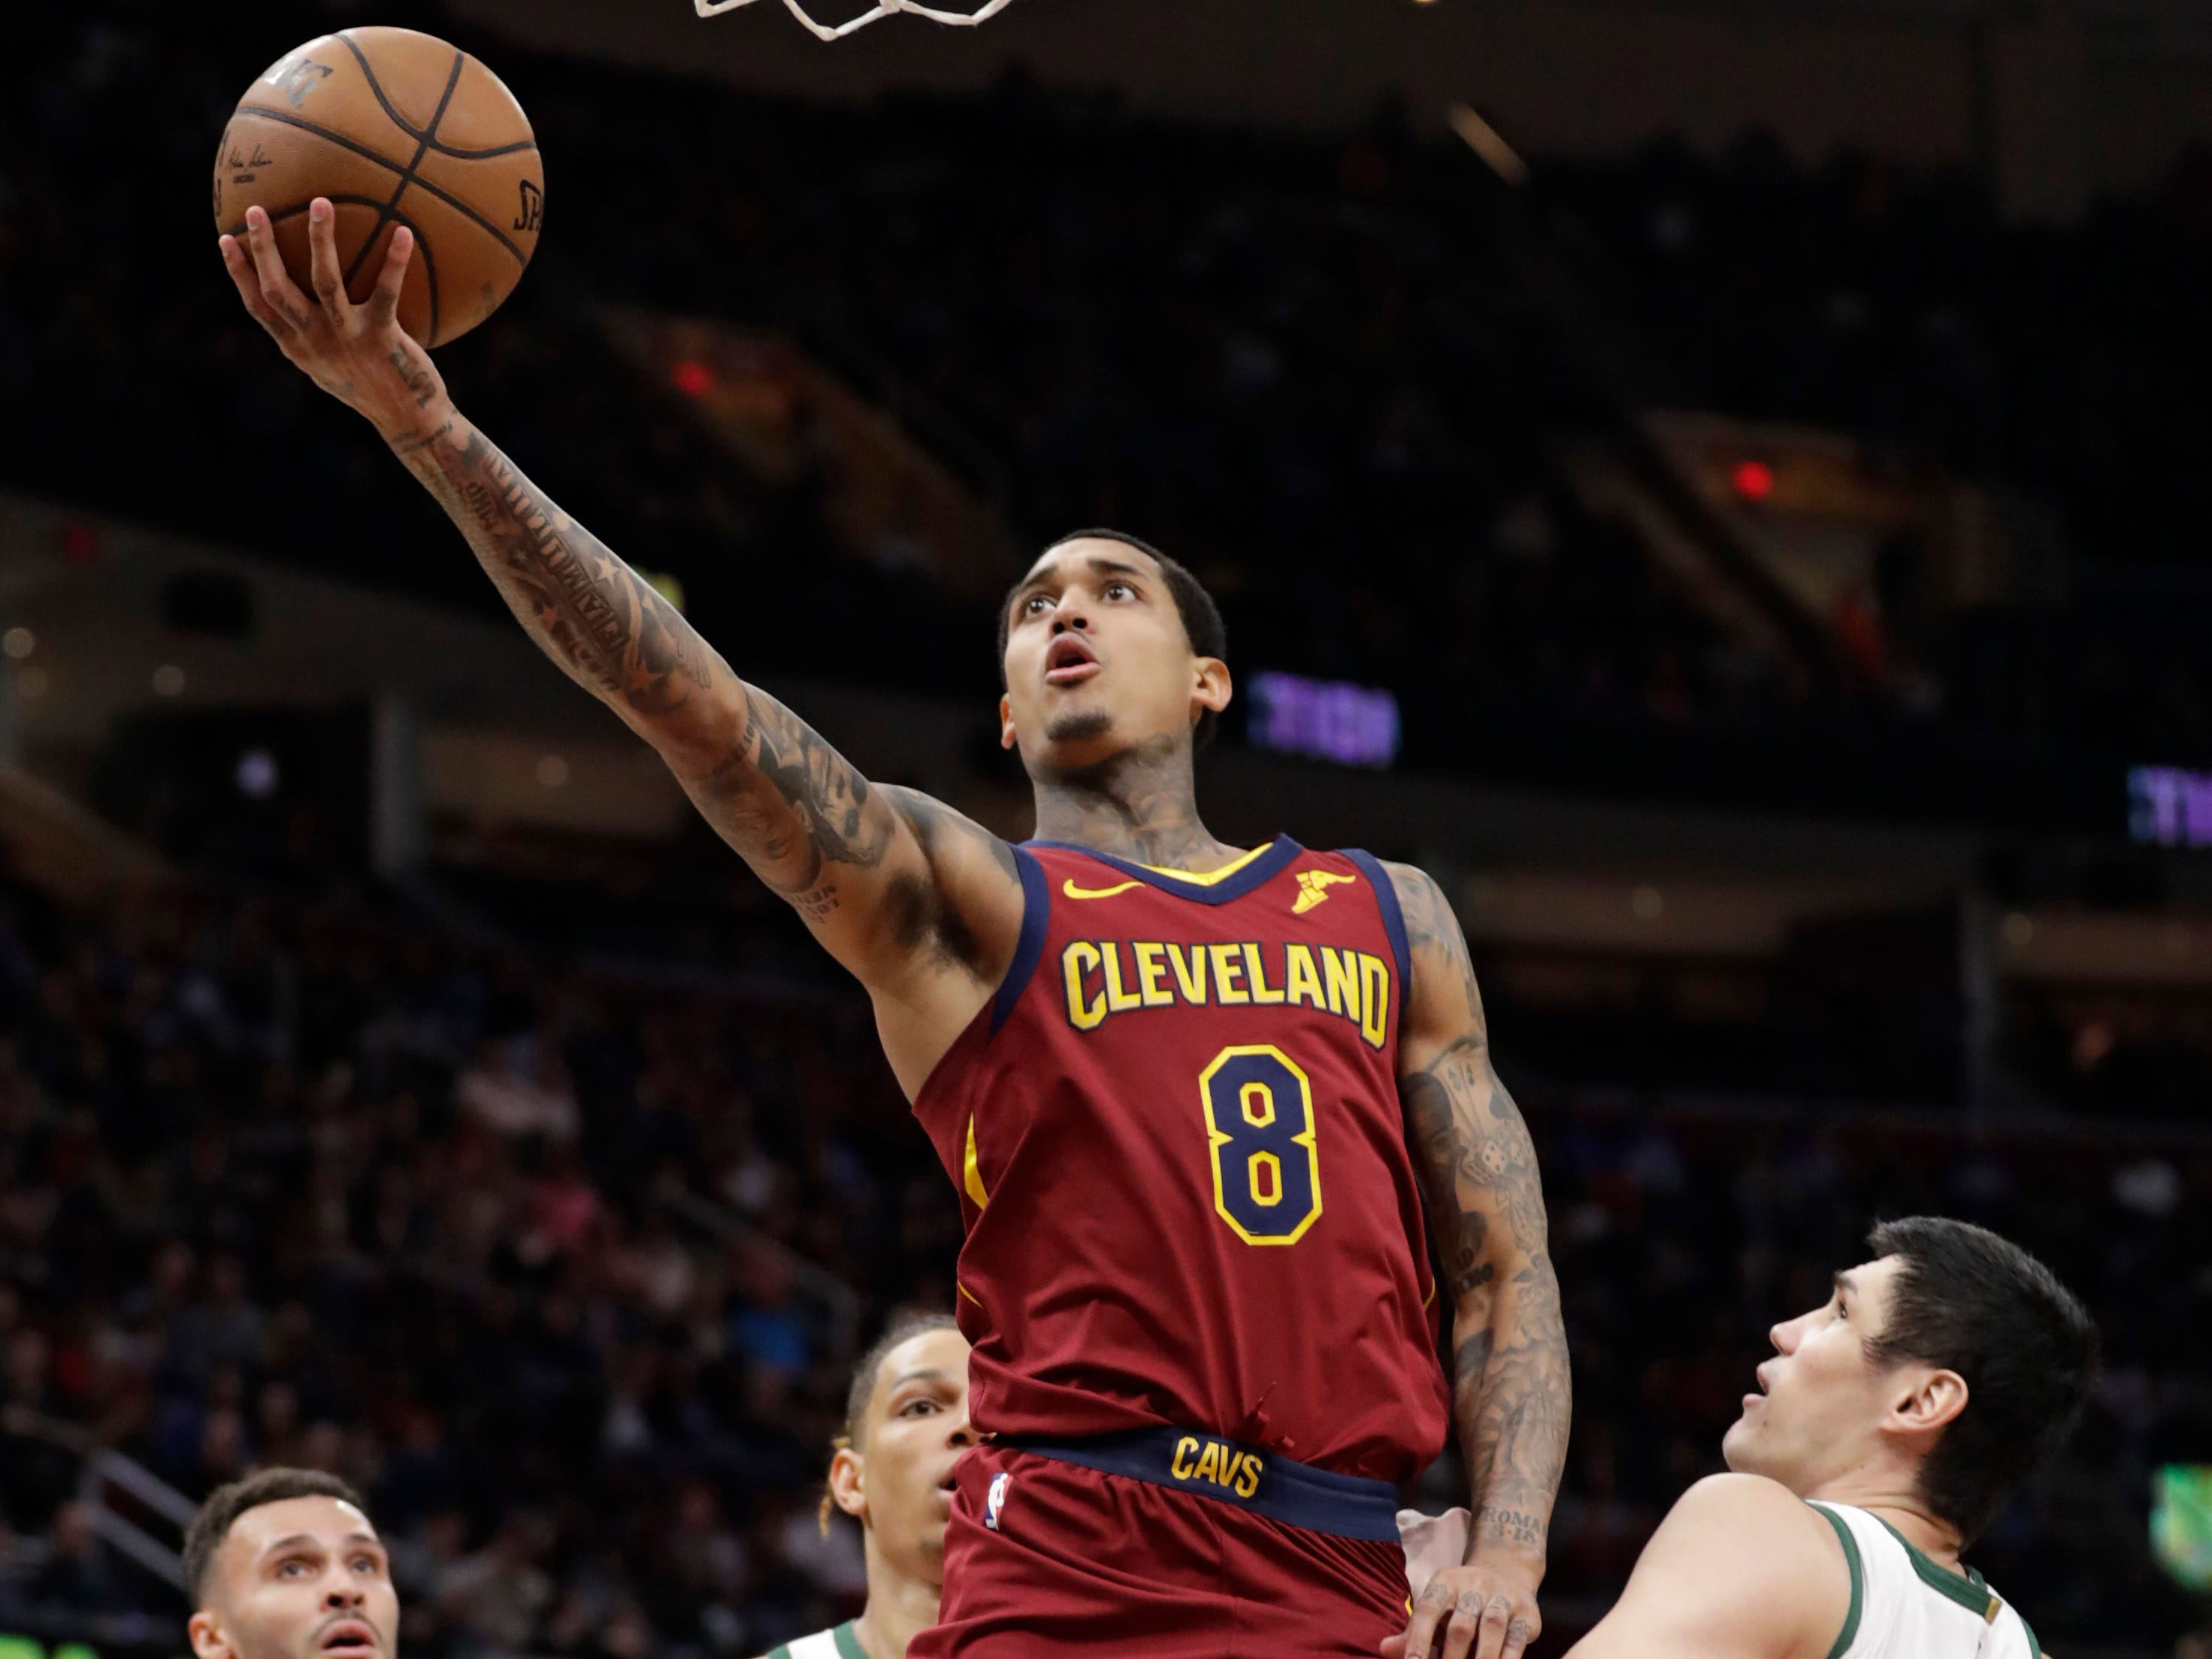 Jordan Clarkson was a thorn in the Bucks' side Wednesday night as he came off the bench for a 23-point effort for the Cavaliers.